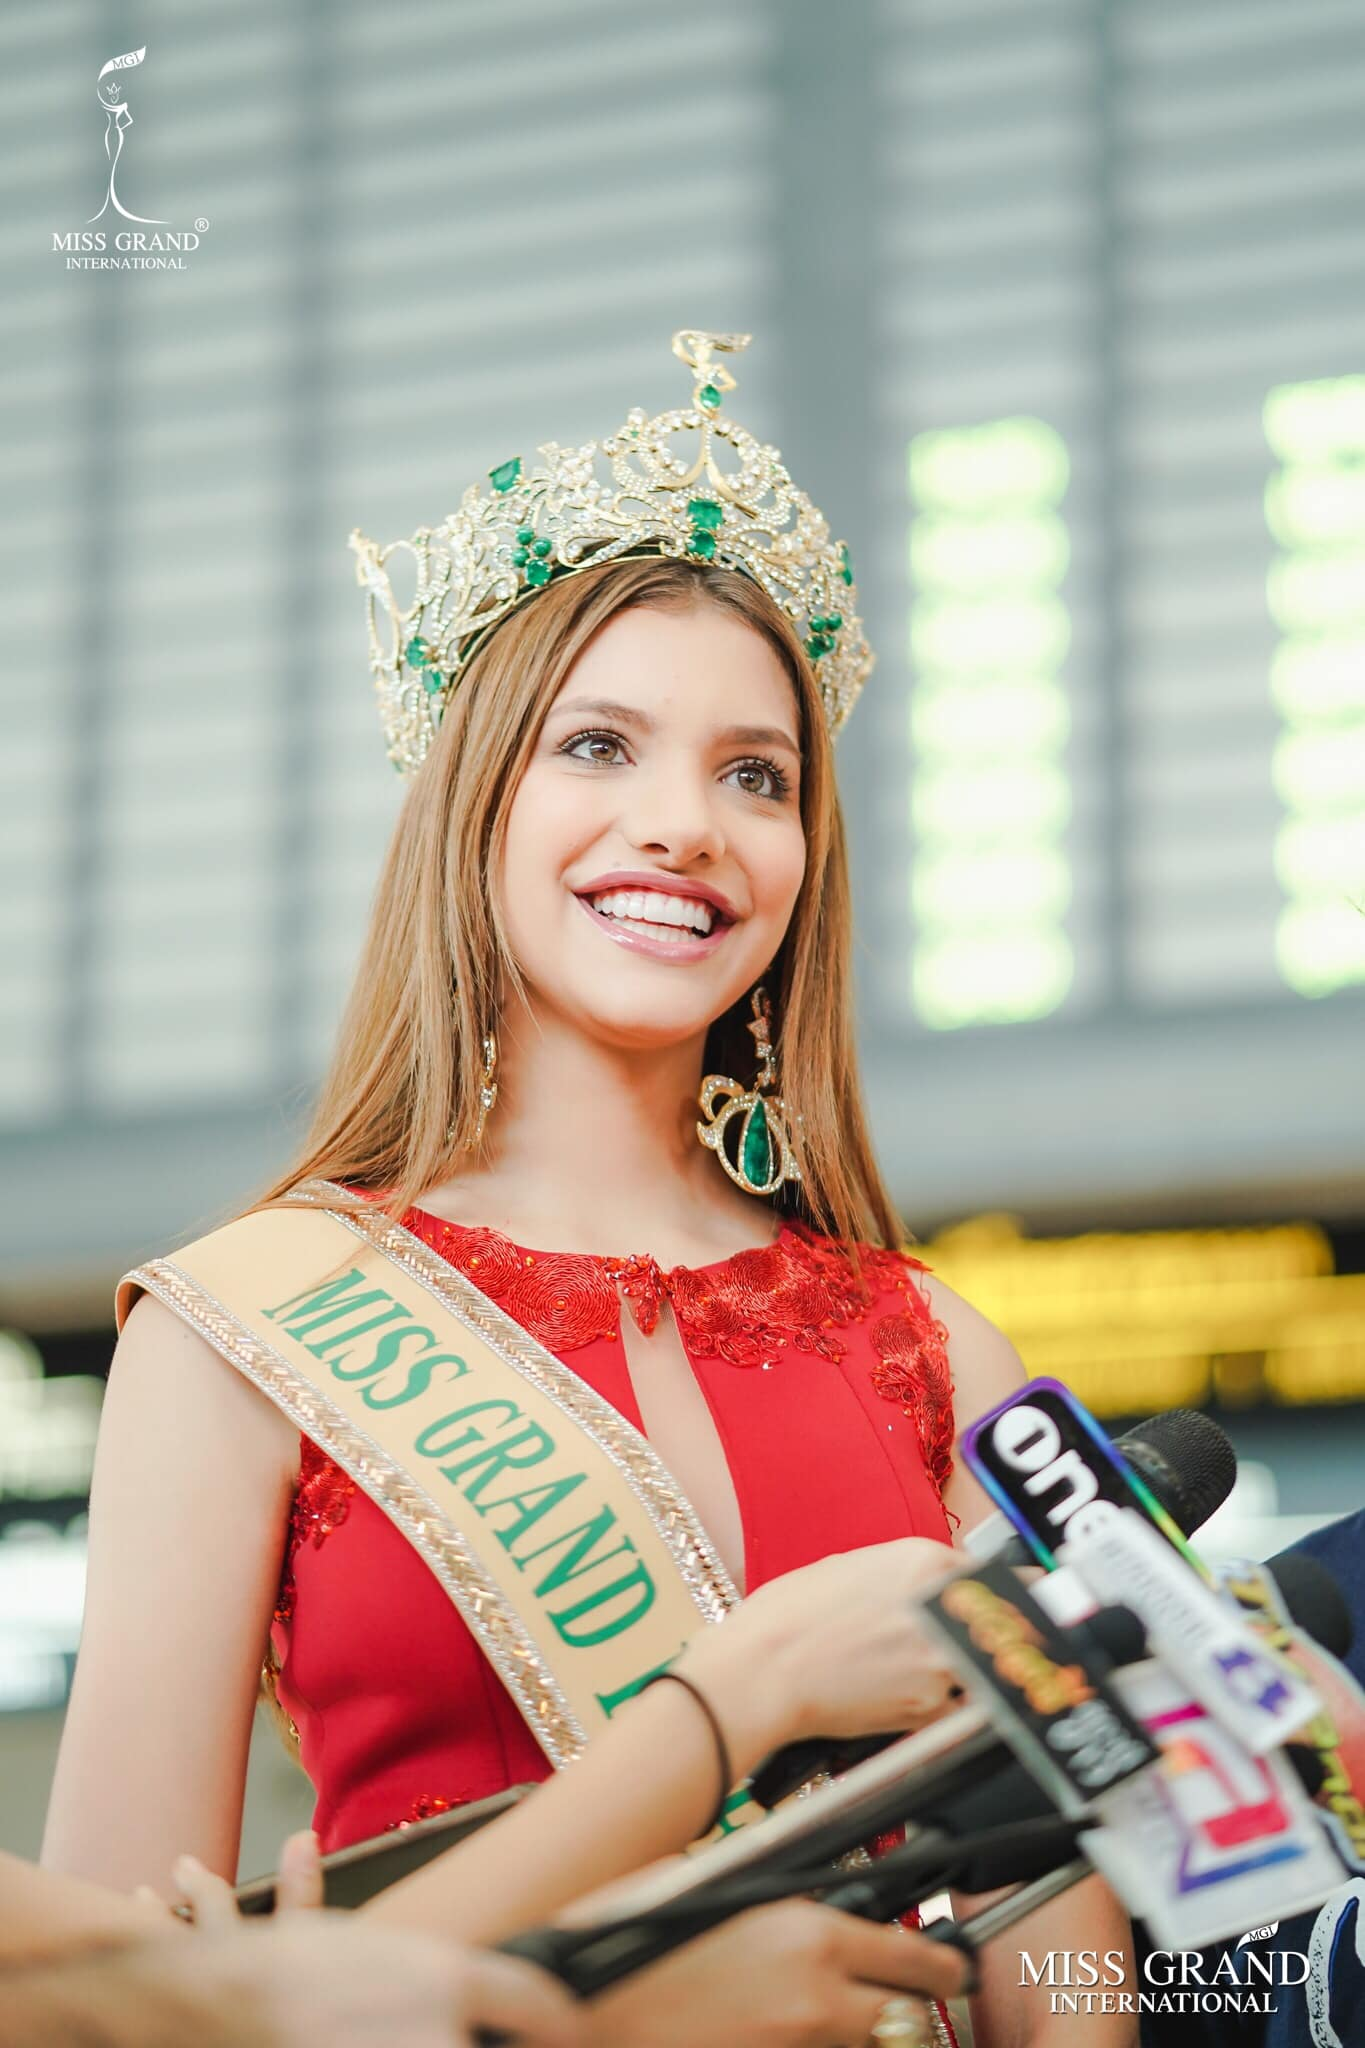 lourdes valentina figuera, miss grand international 2019. - Página 13 Prbnl10